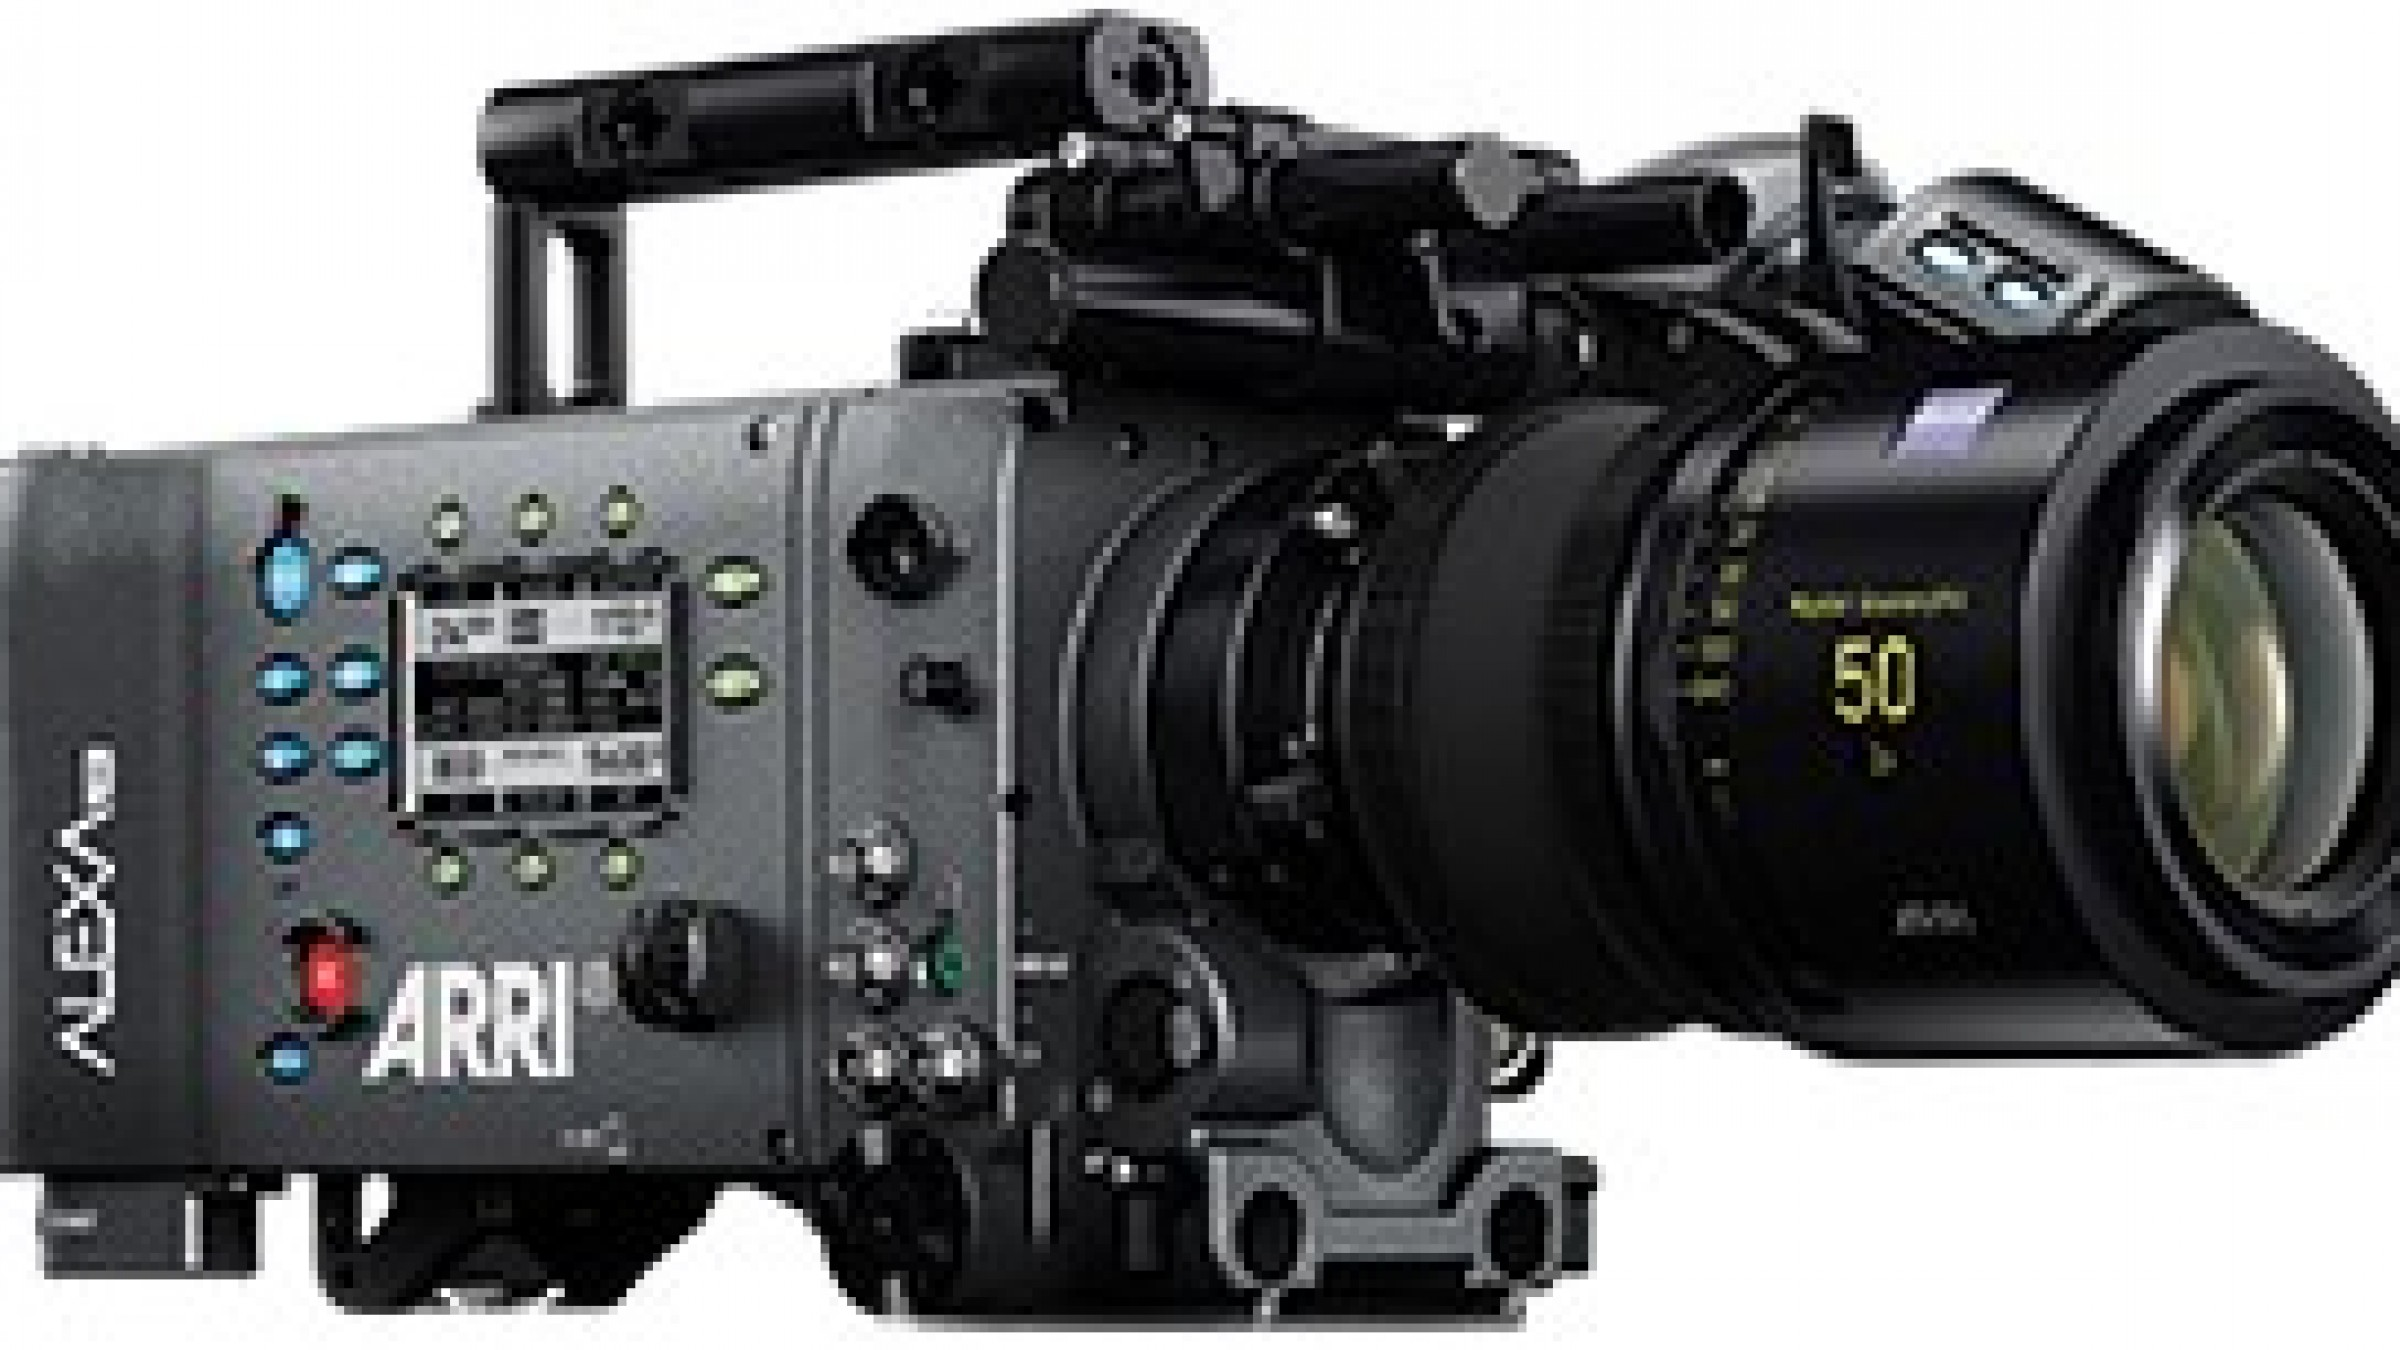 ARRI's New ALEXA HD is a 'Budget' Version of the Industry